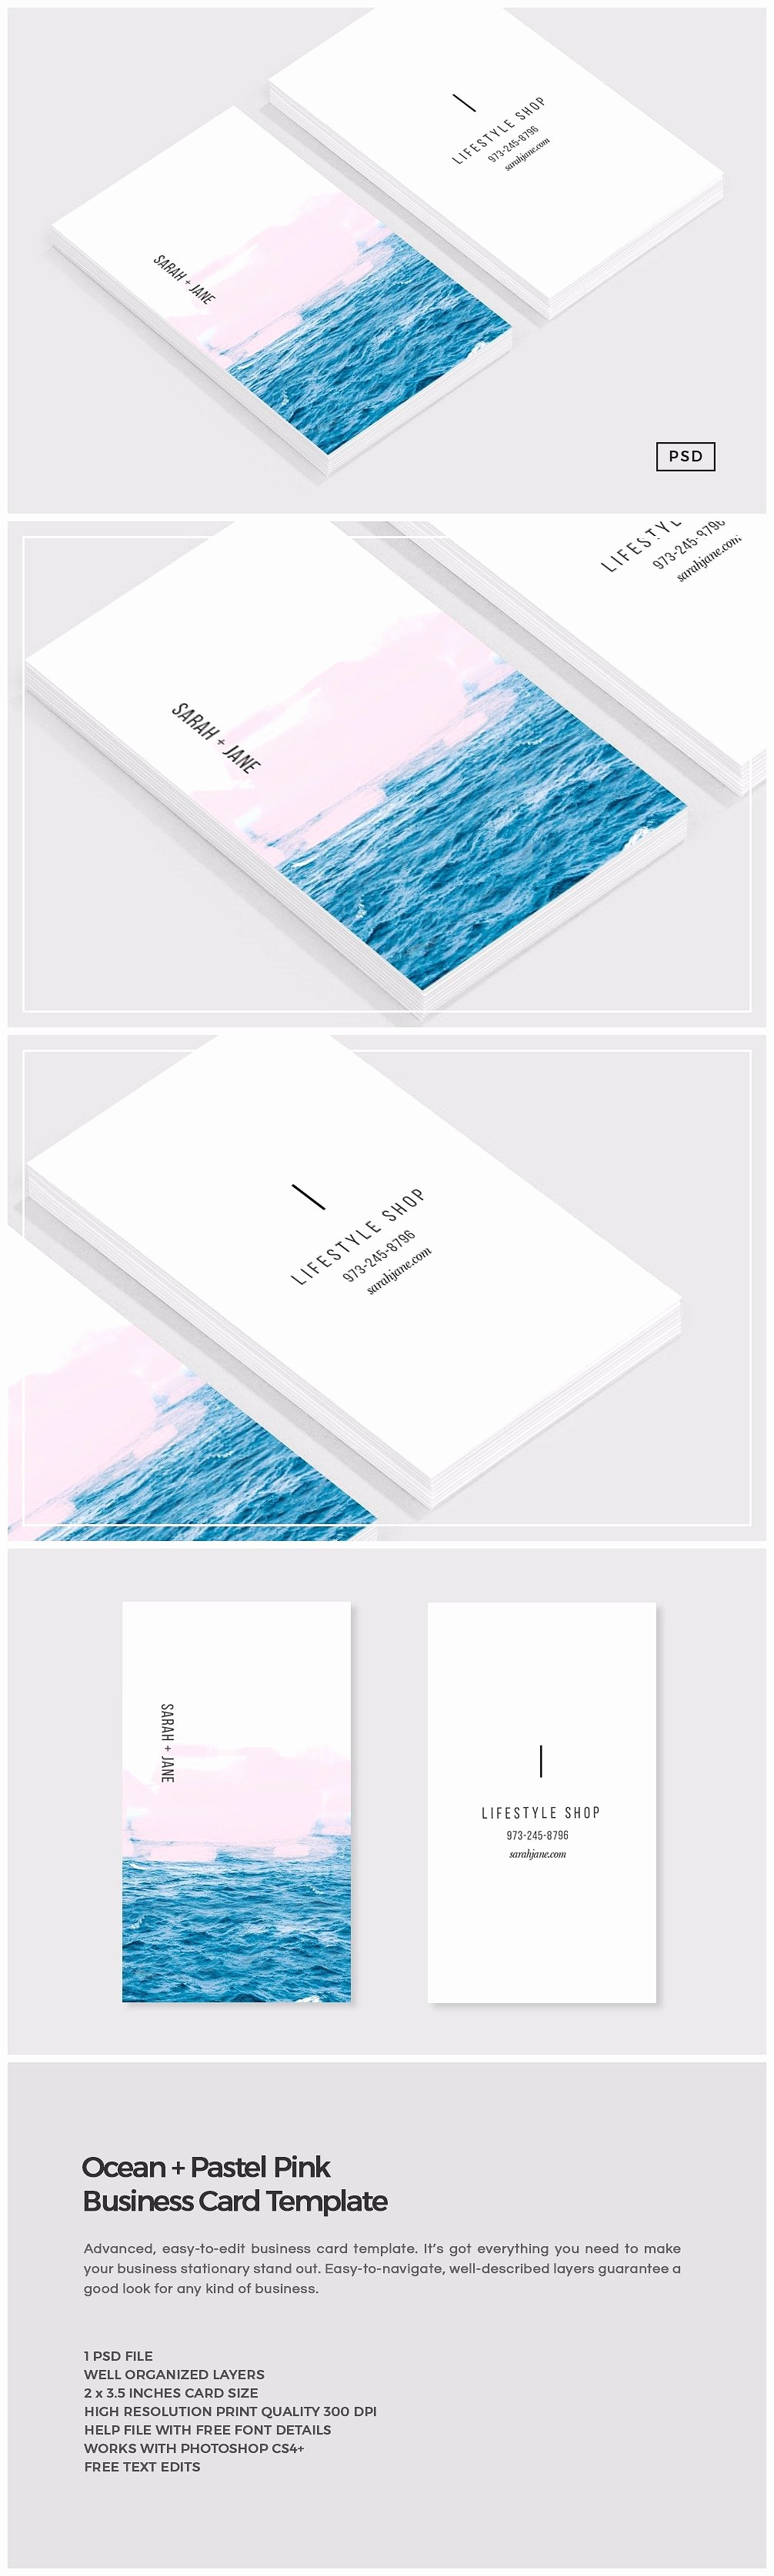 Business Card with Picture Template Inspirational Ocean Pink Business Card Template Business Card